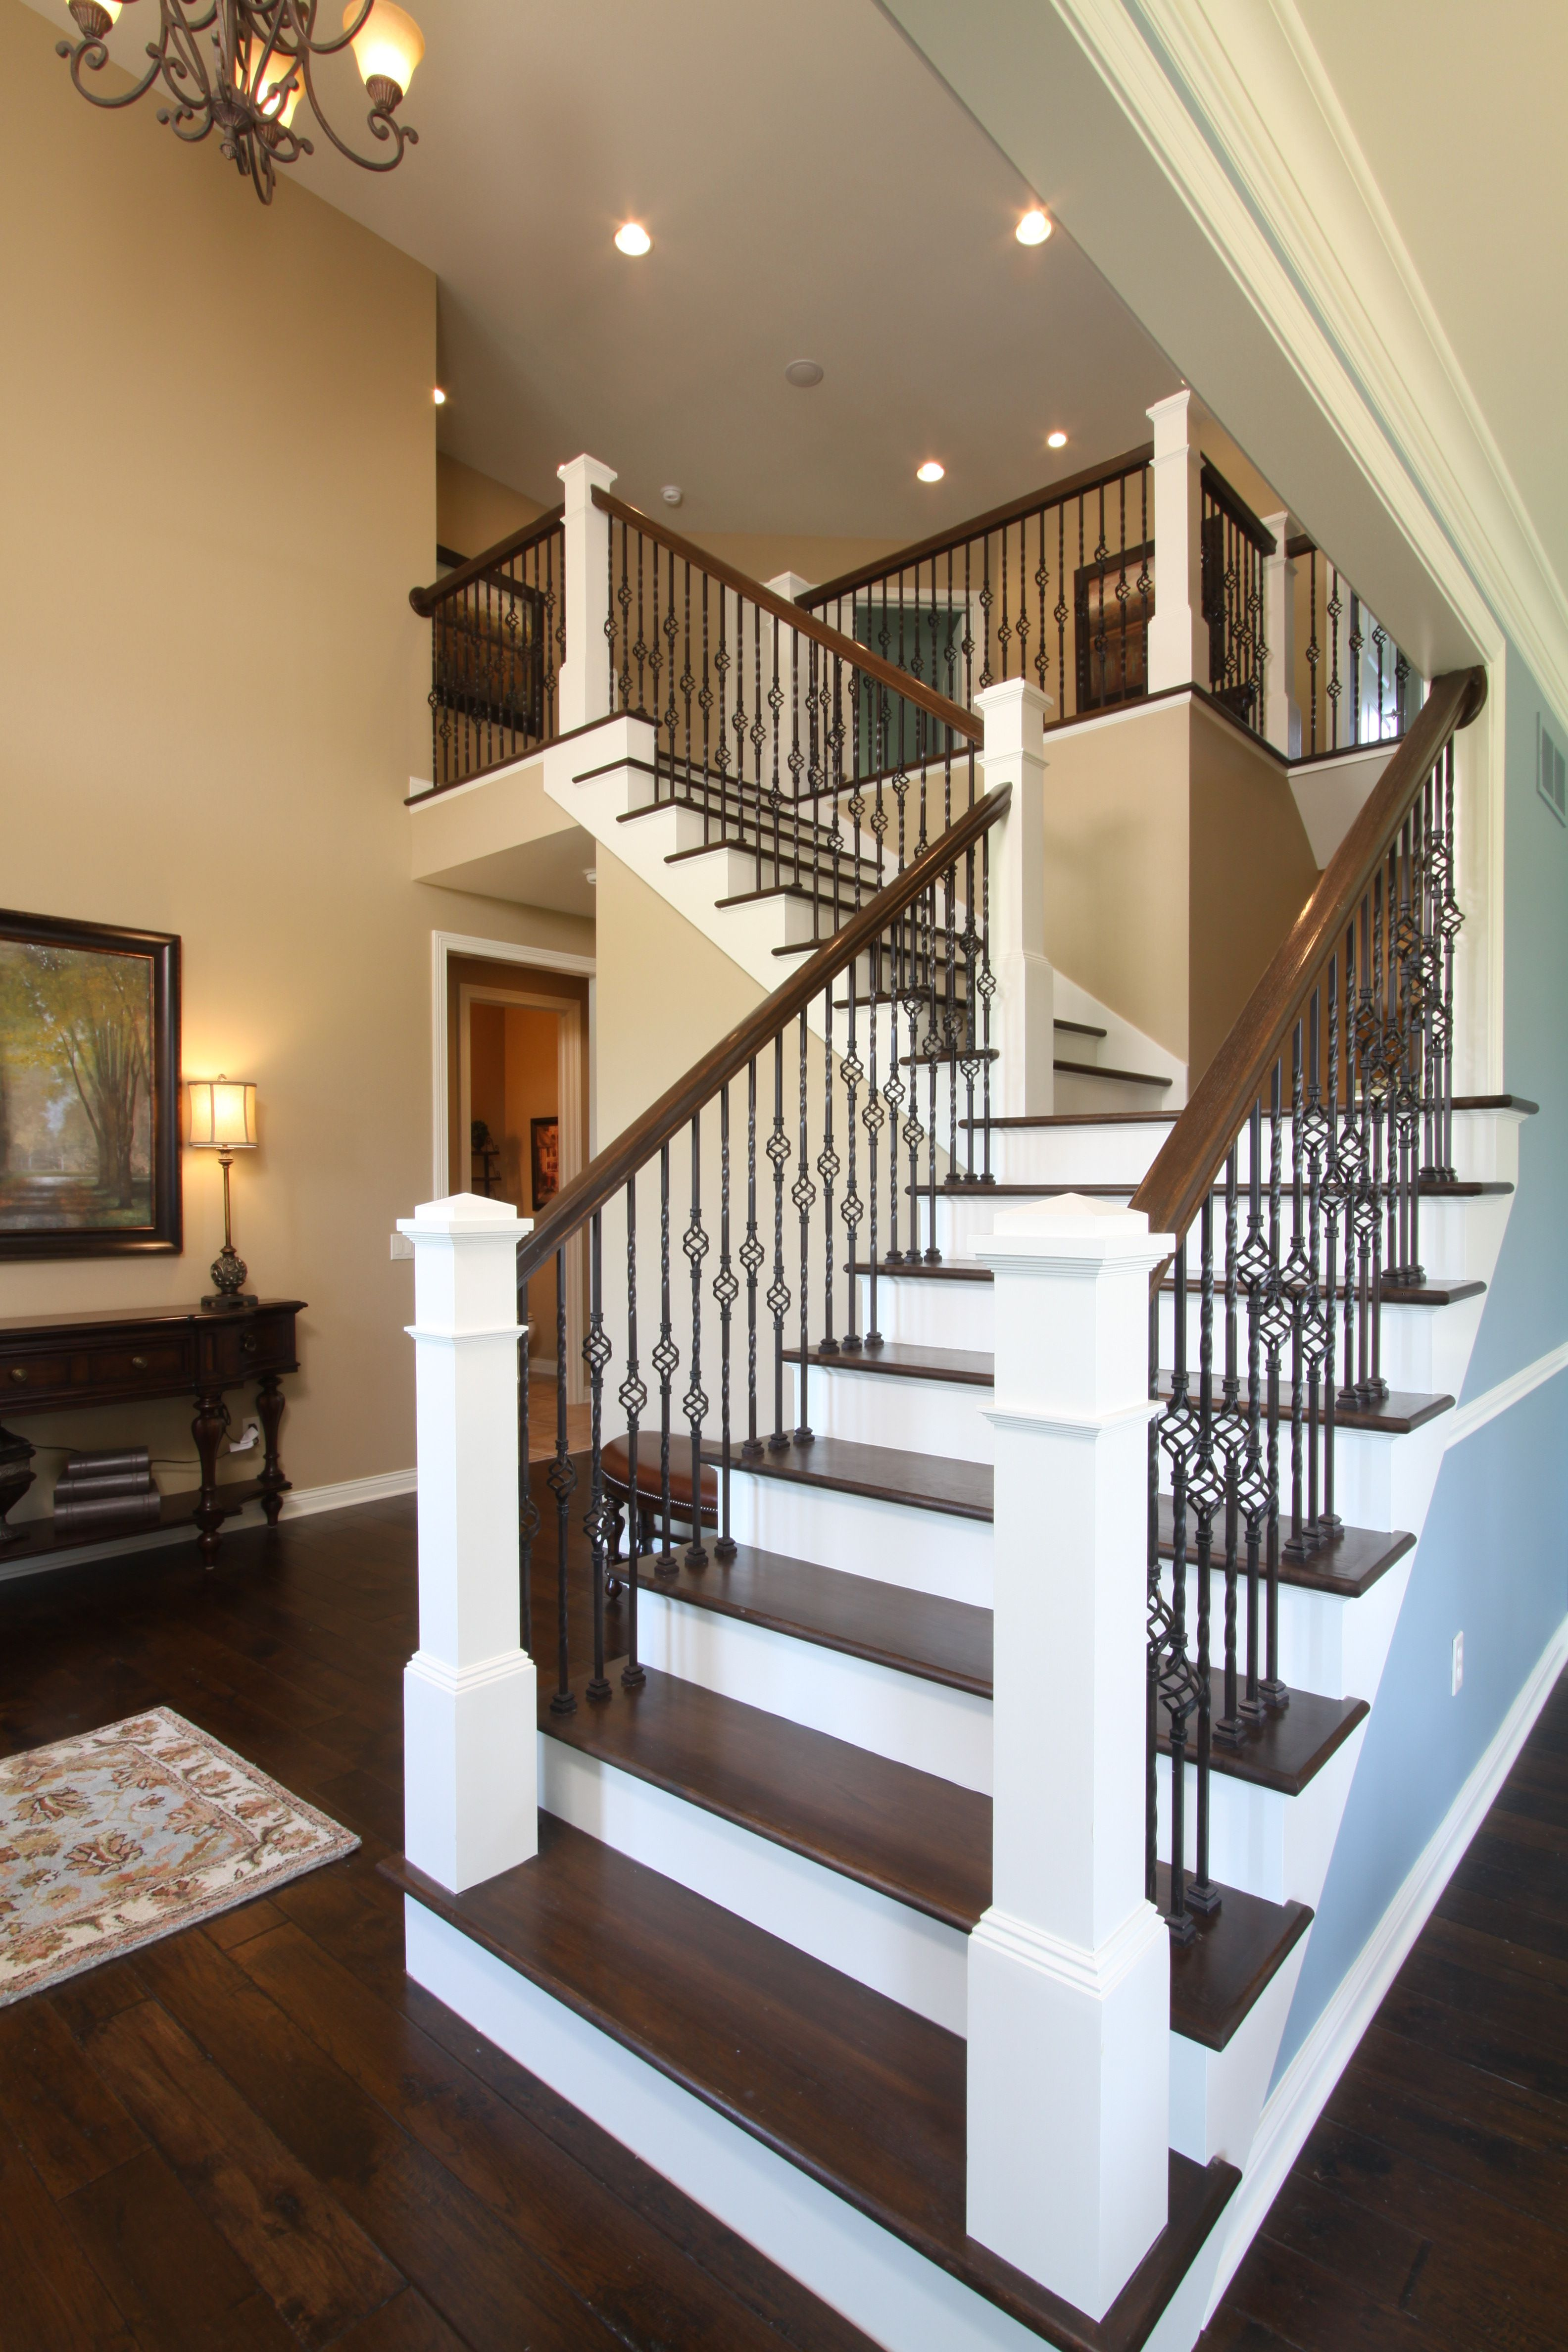 Open Staircase Design Open Railing Stairs With Wrought Iron Balusters Avbinc